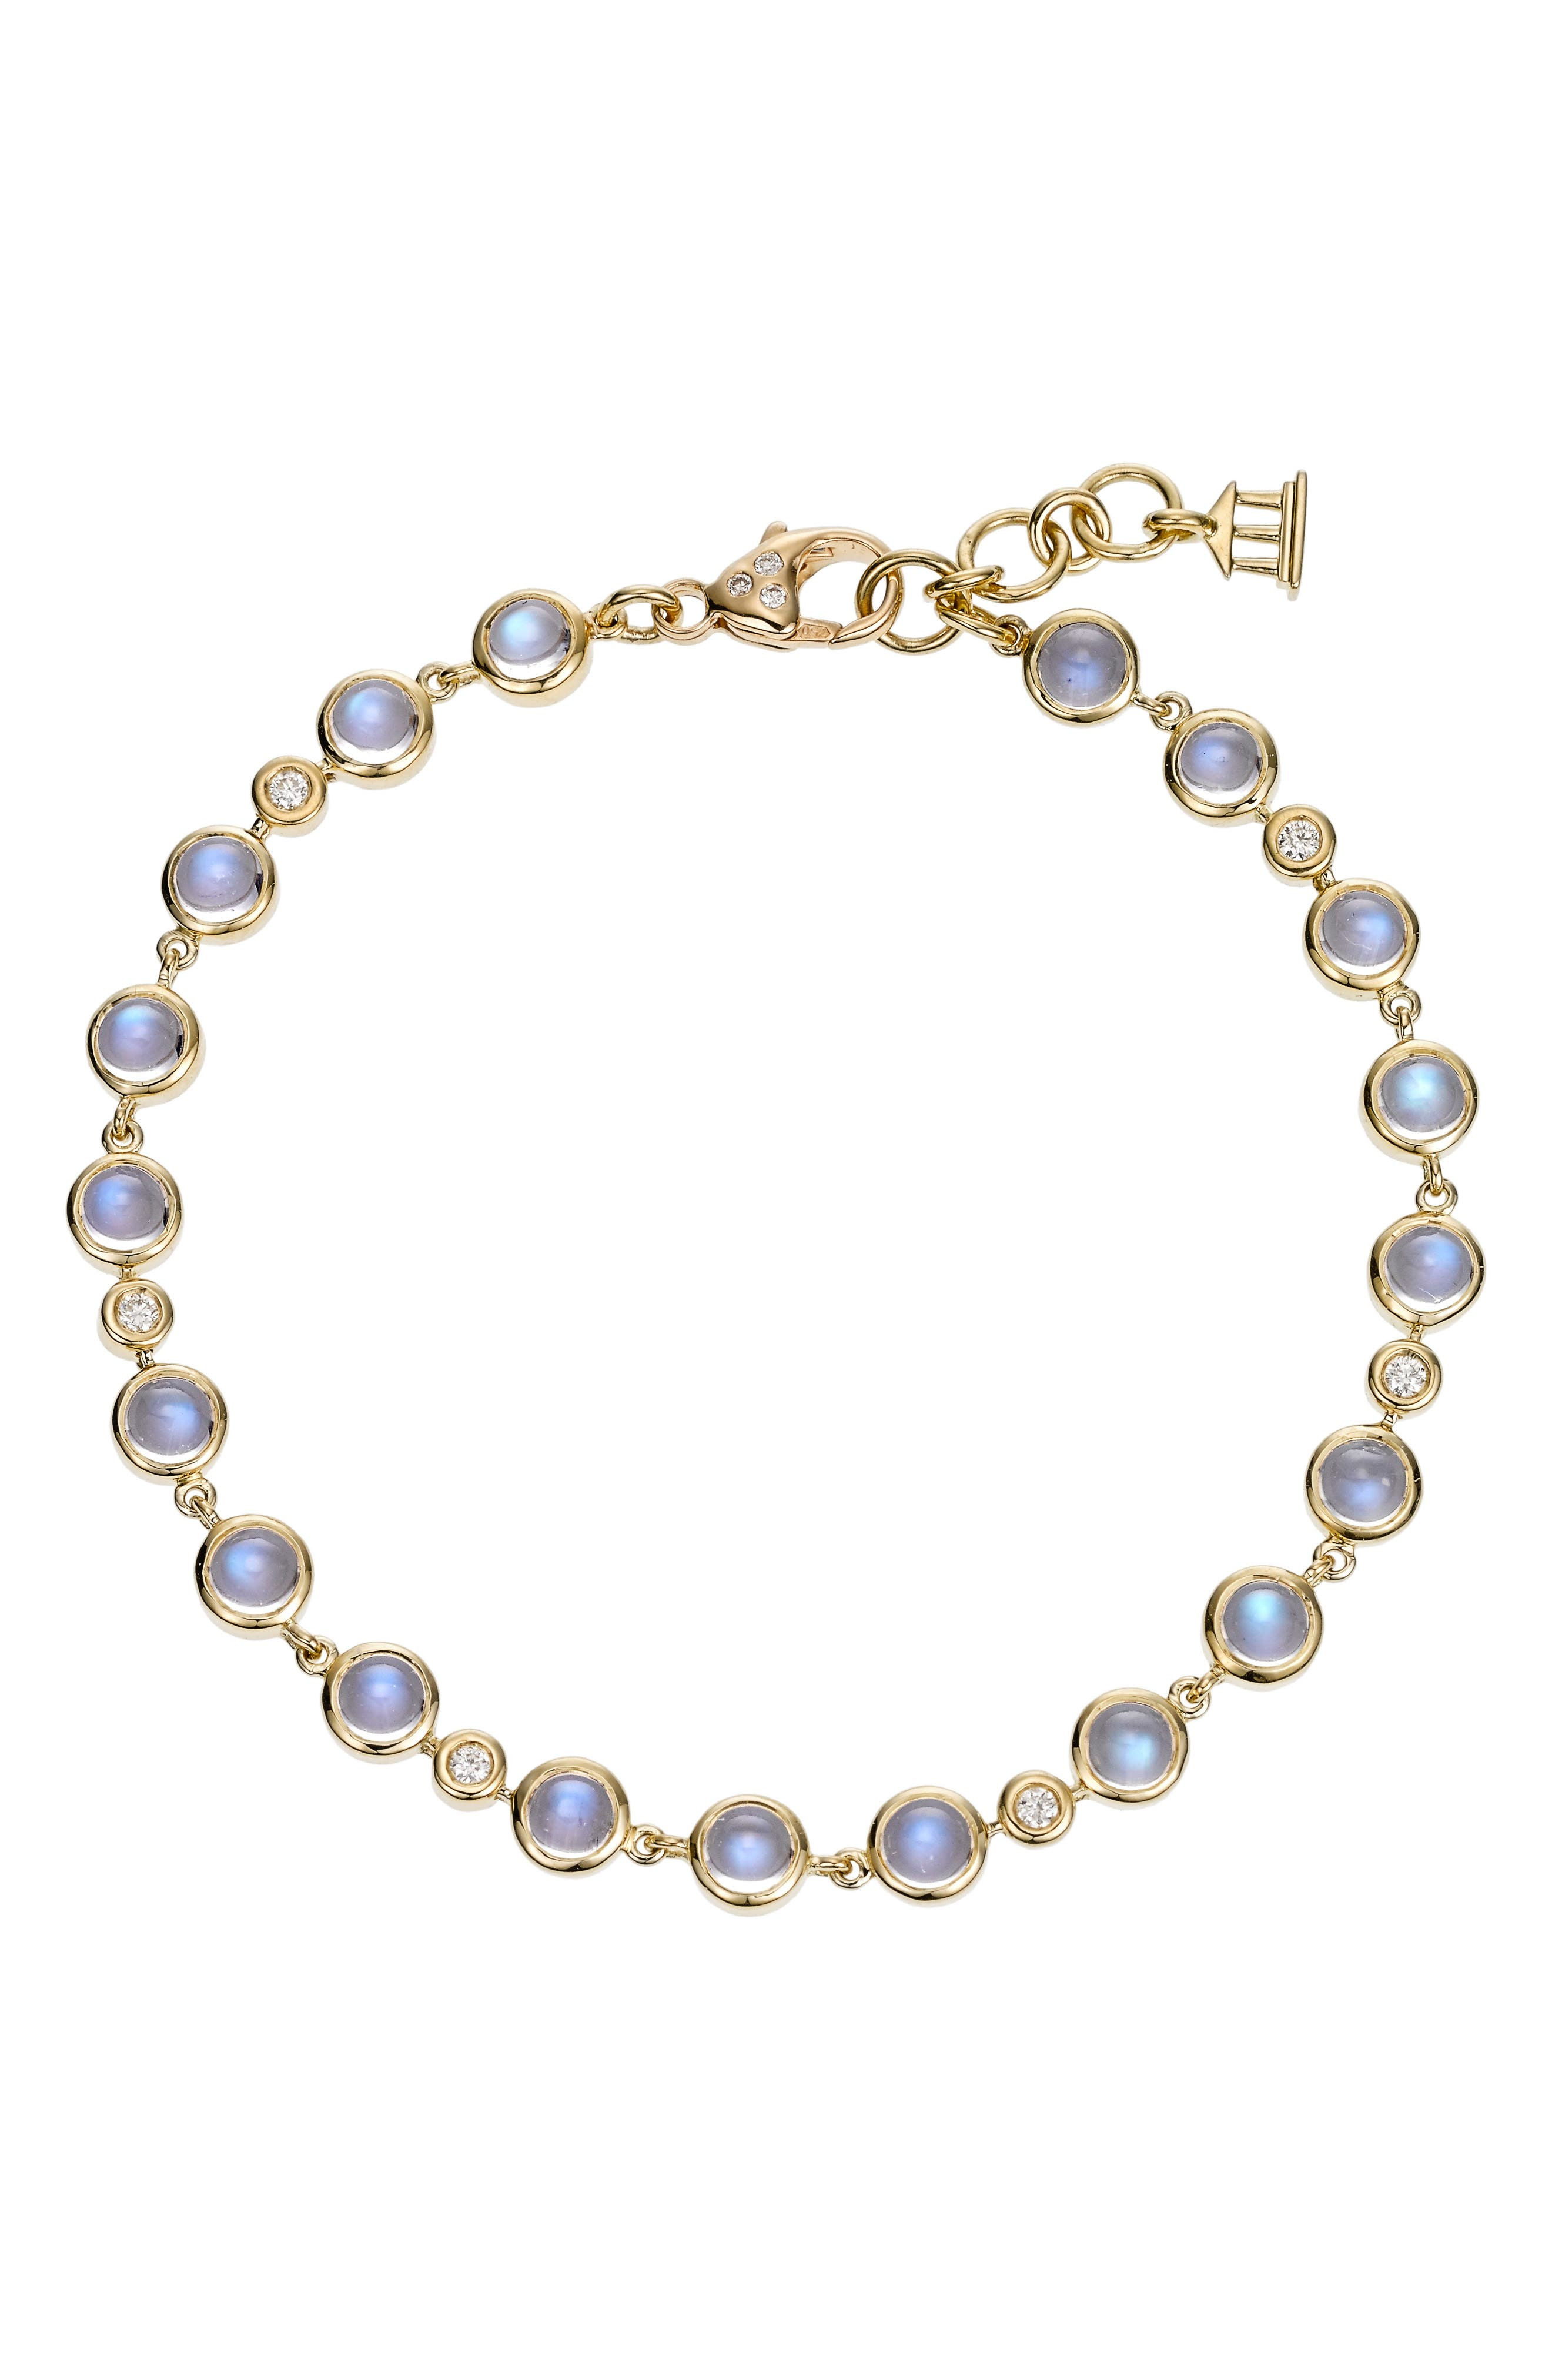 Temple St. Clair Diamond & Moonstone Bracelet,                             Main thumbnail 1, color,                             D0.213 Gvs1 Bm 18Kyg